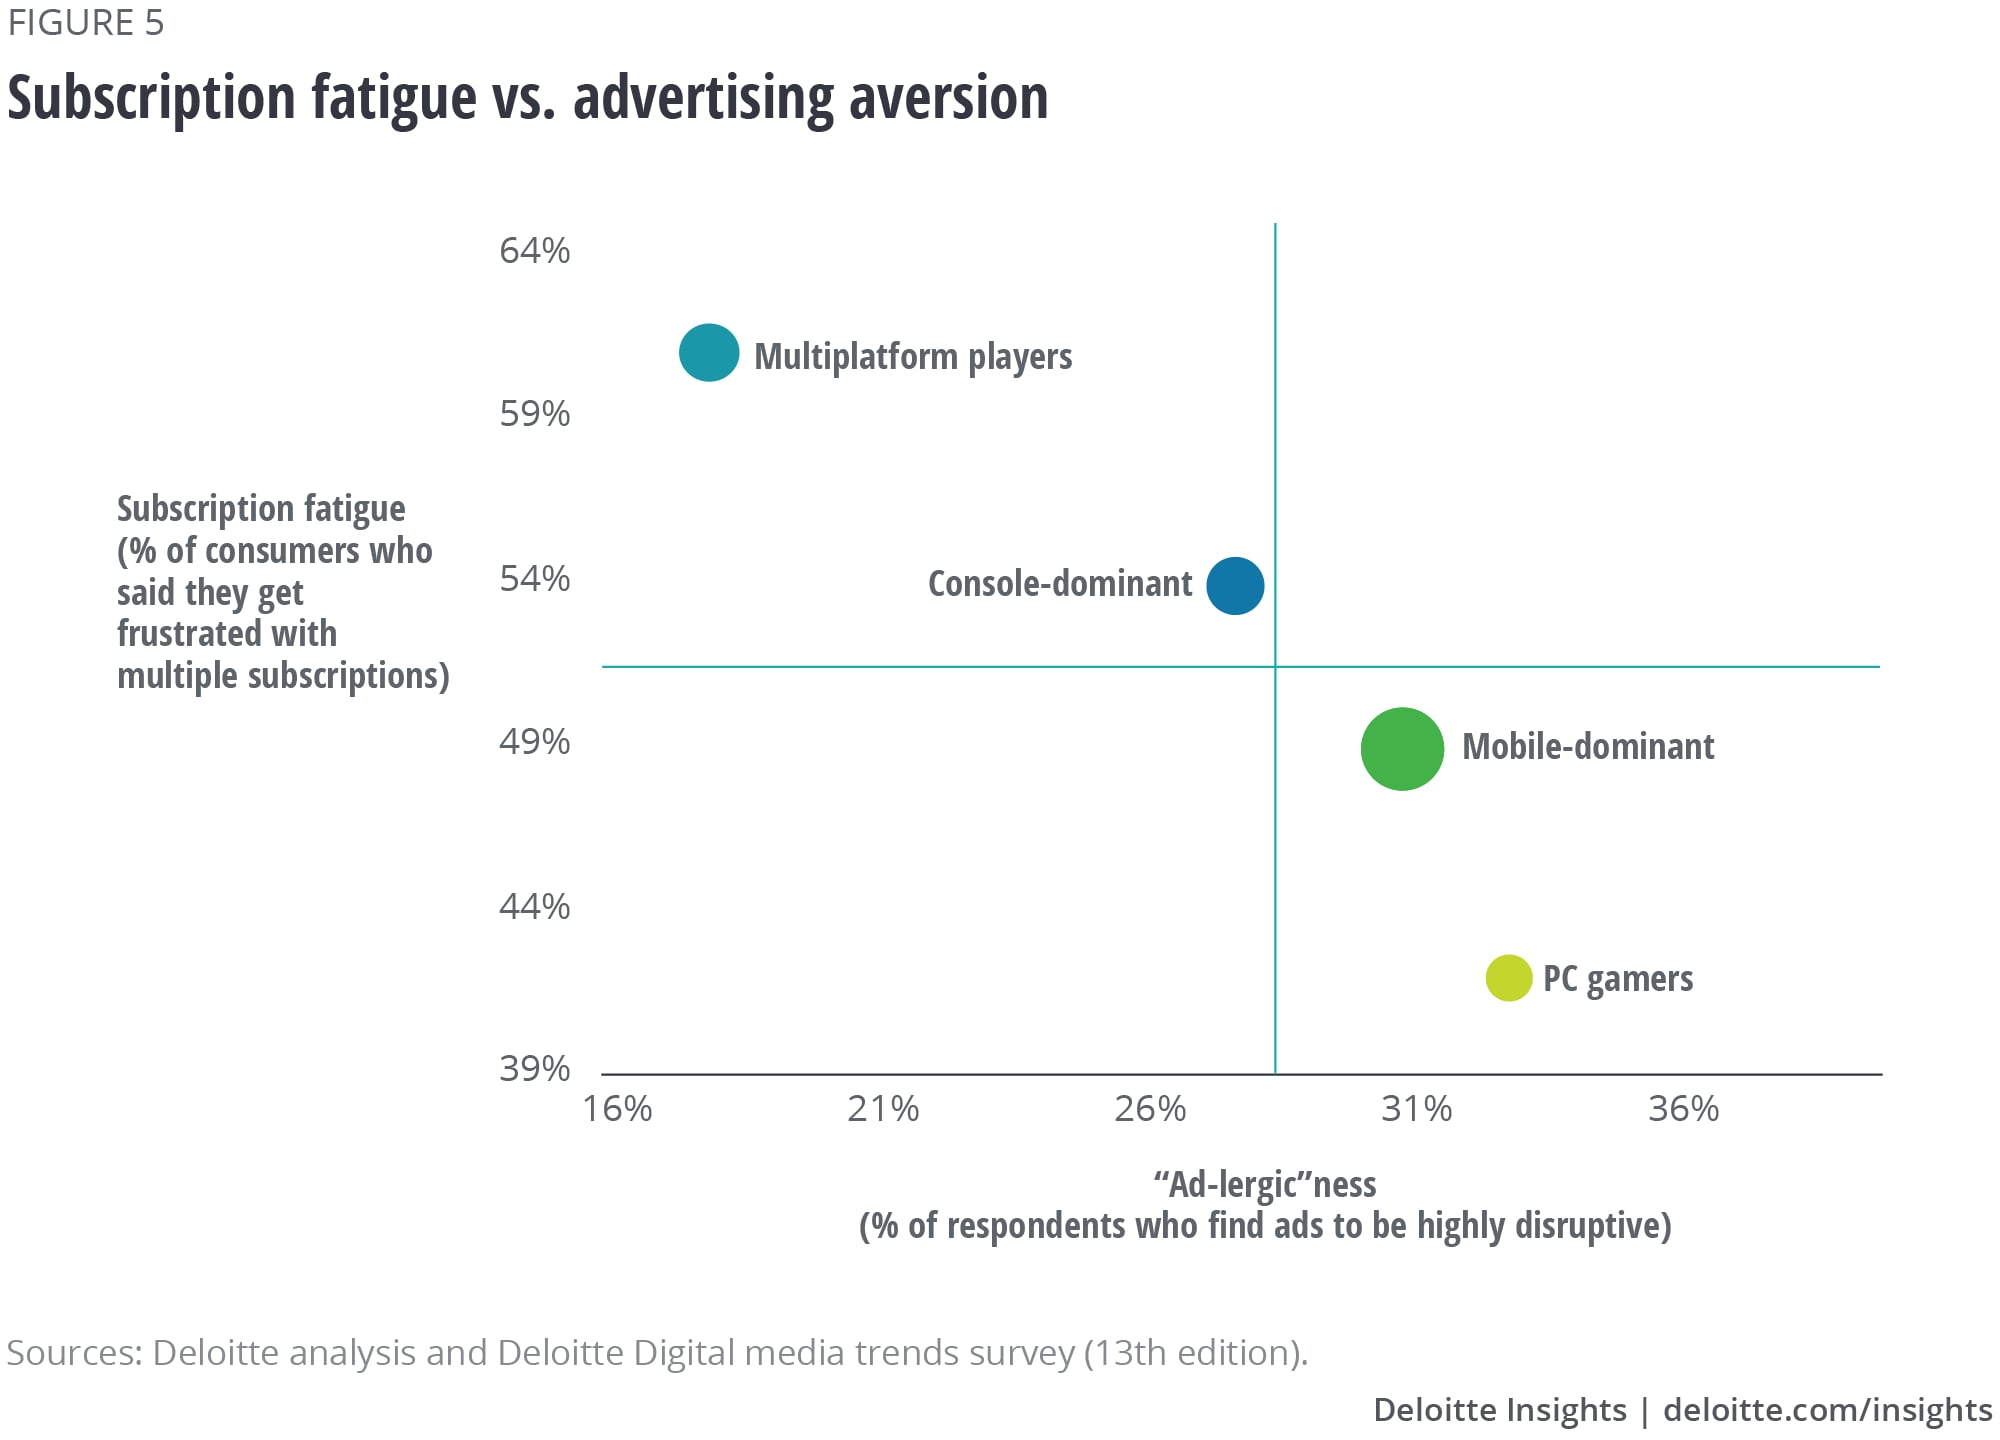 Subscription fatigue vs. advertising aversion